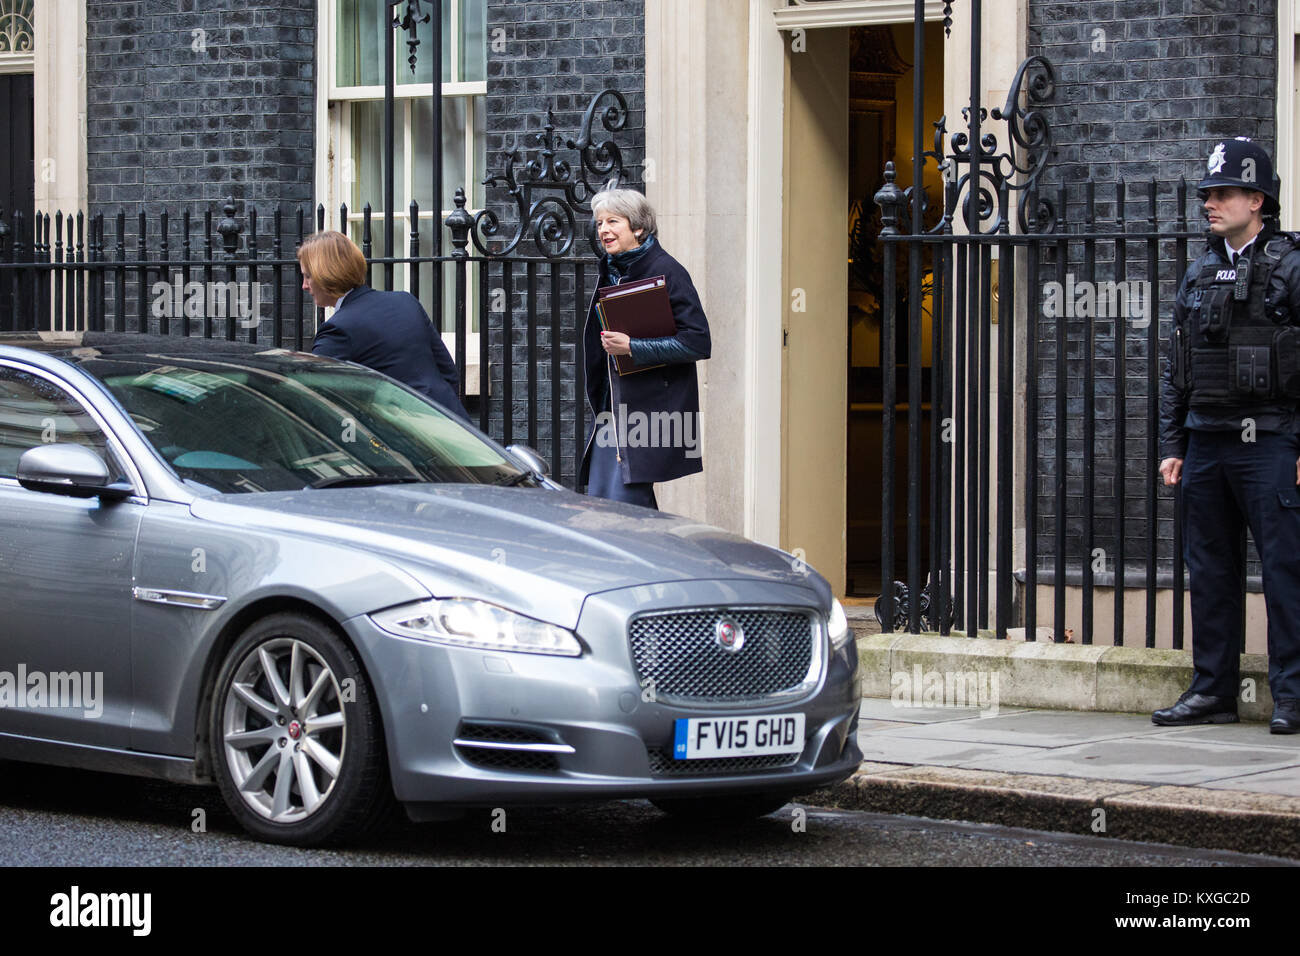 London, UK. 10th Jan, 2018. Prime Minister Theresa May leaves 10 Downing Street for Prime Minister's Questions - Stock Image